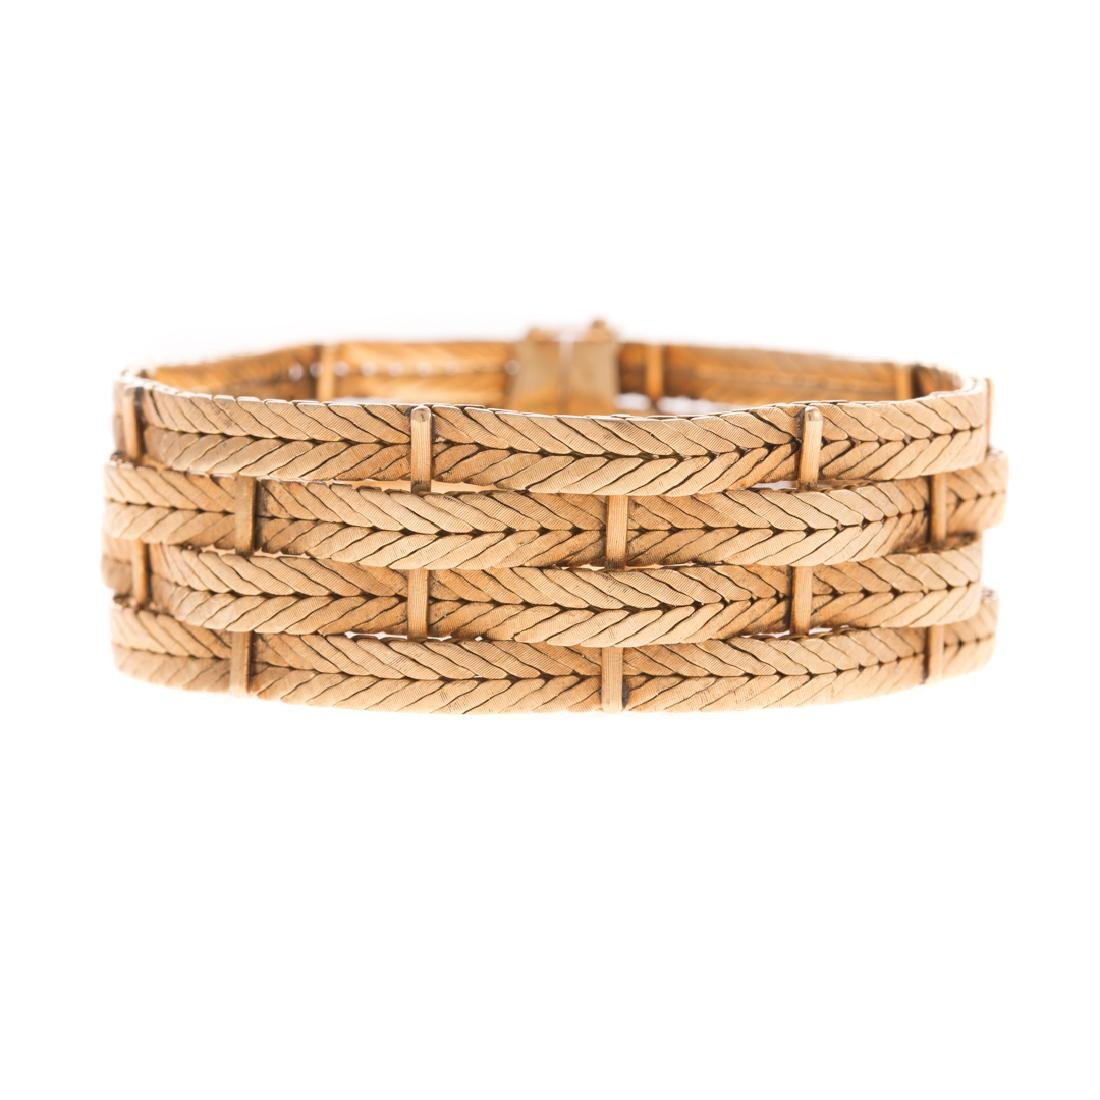 A Lady's Buccellati 4 Row Woven Bracelet in 18K